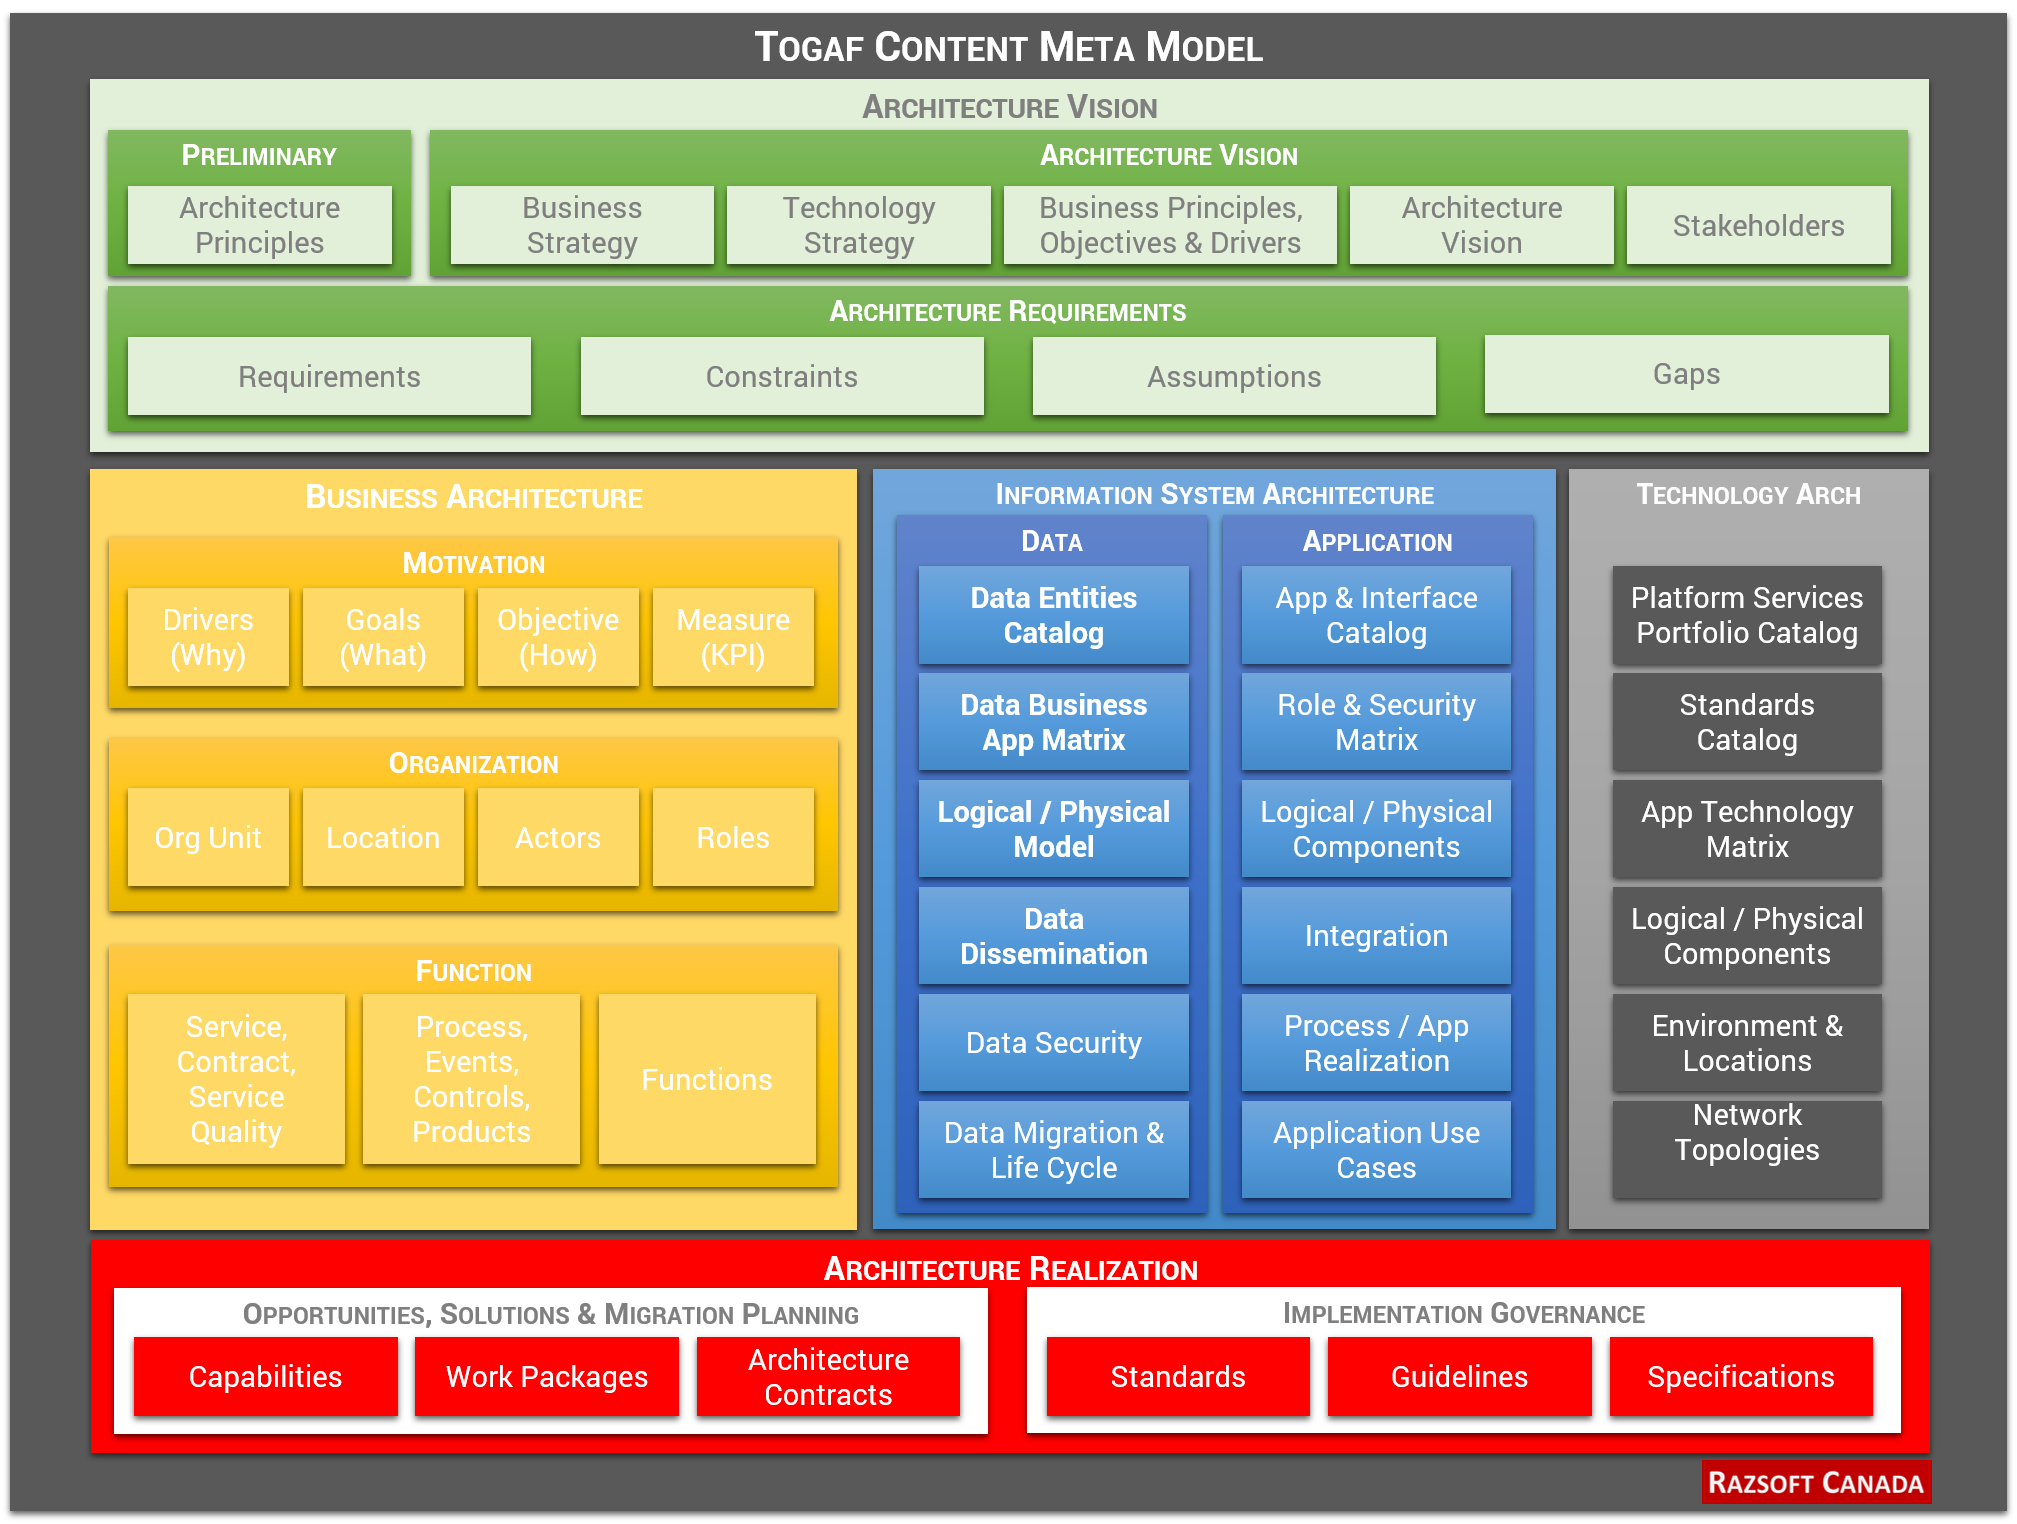 Razsoft canada enterprise architecture service for Togaf architecture vision template